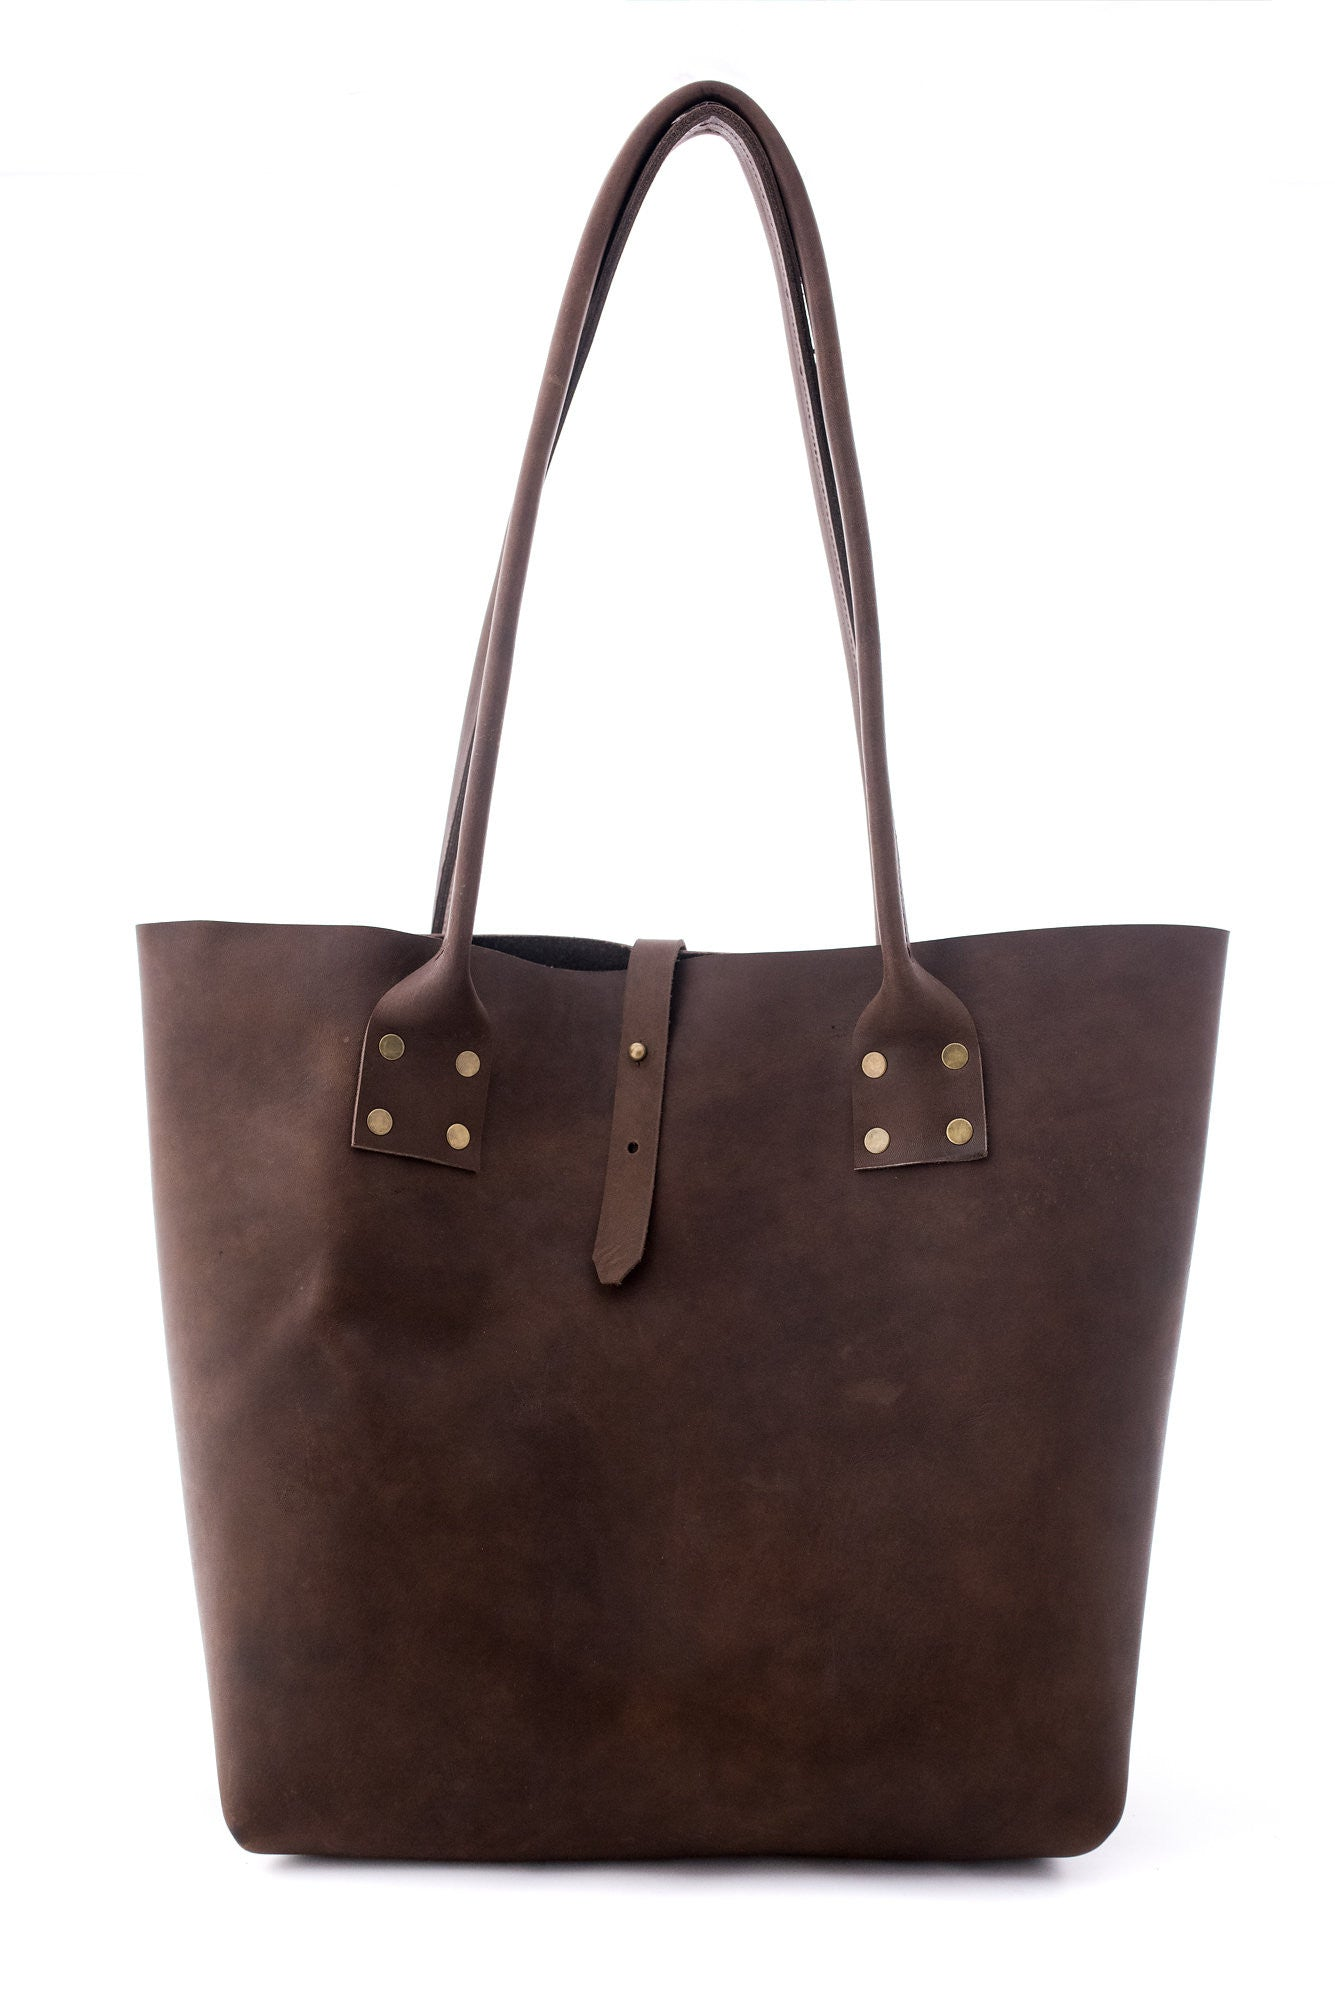 Refined Tote in Brown Leather - handcrafted by Market Canvas Leather in Tofino, BC, Canada